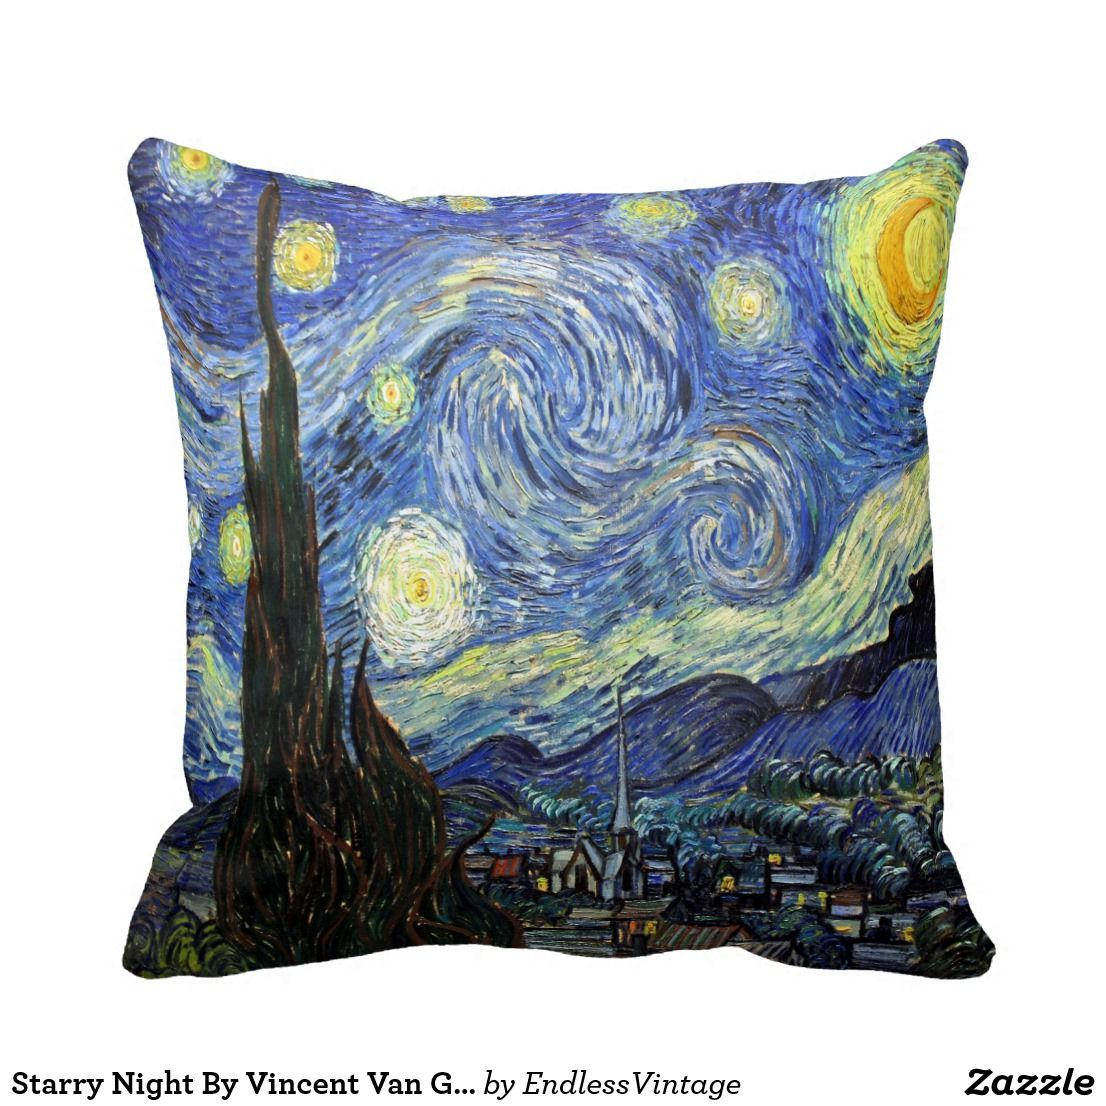 van gogh starry night Long Cushion Covers Pillow Cases Home Decor or Inner